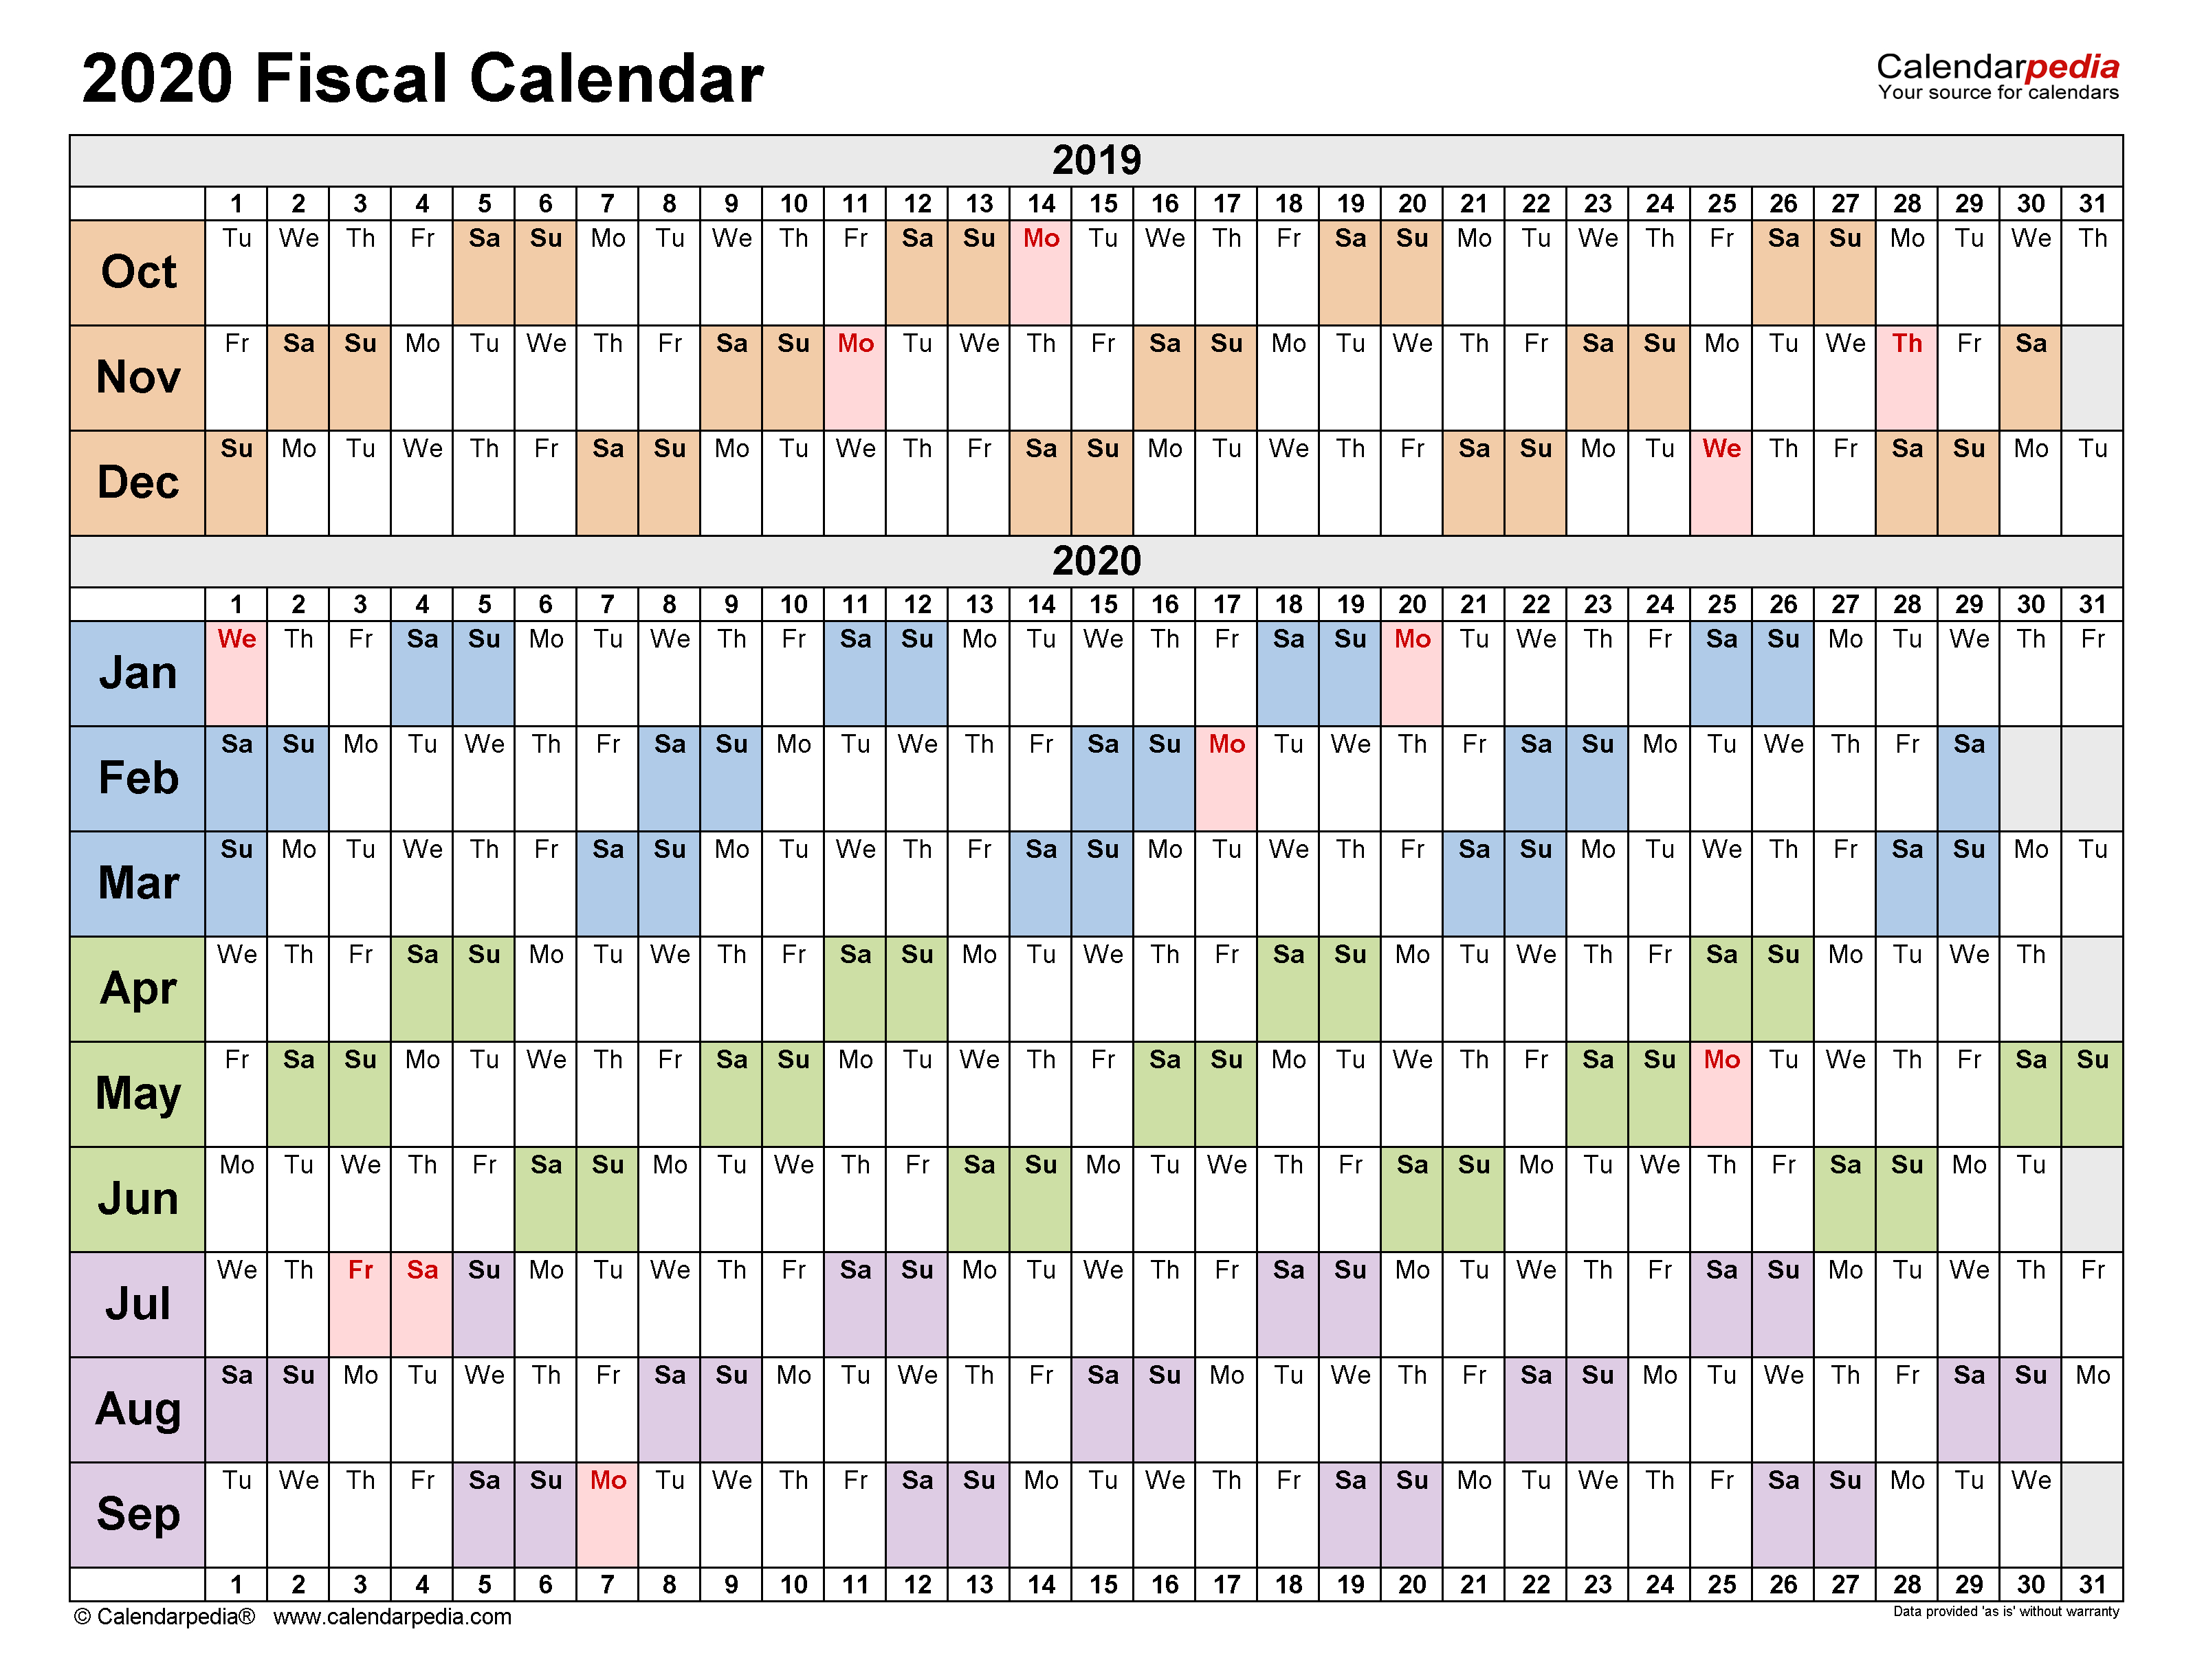 Fiscal Calendars 2020 - Free Printable Pdf Templates in 2021 Payday Working Days Calendar